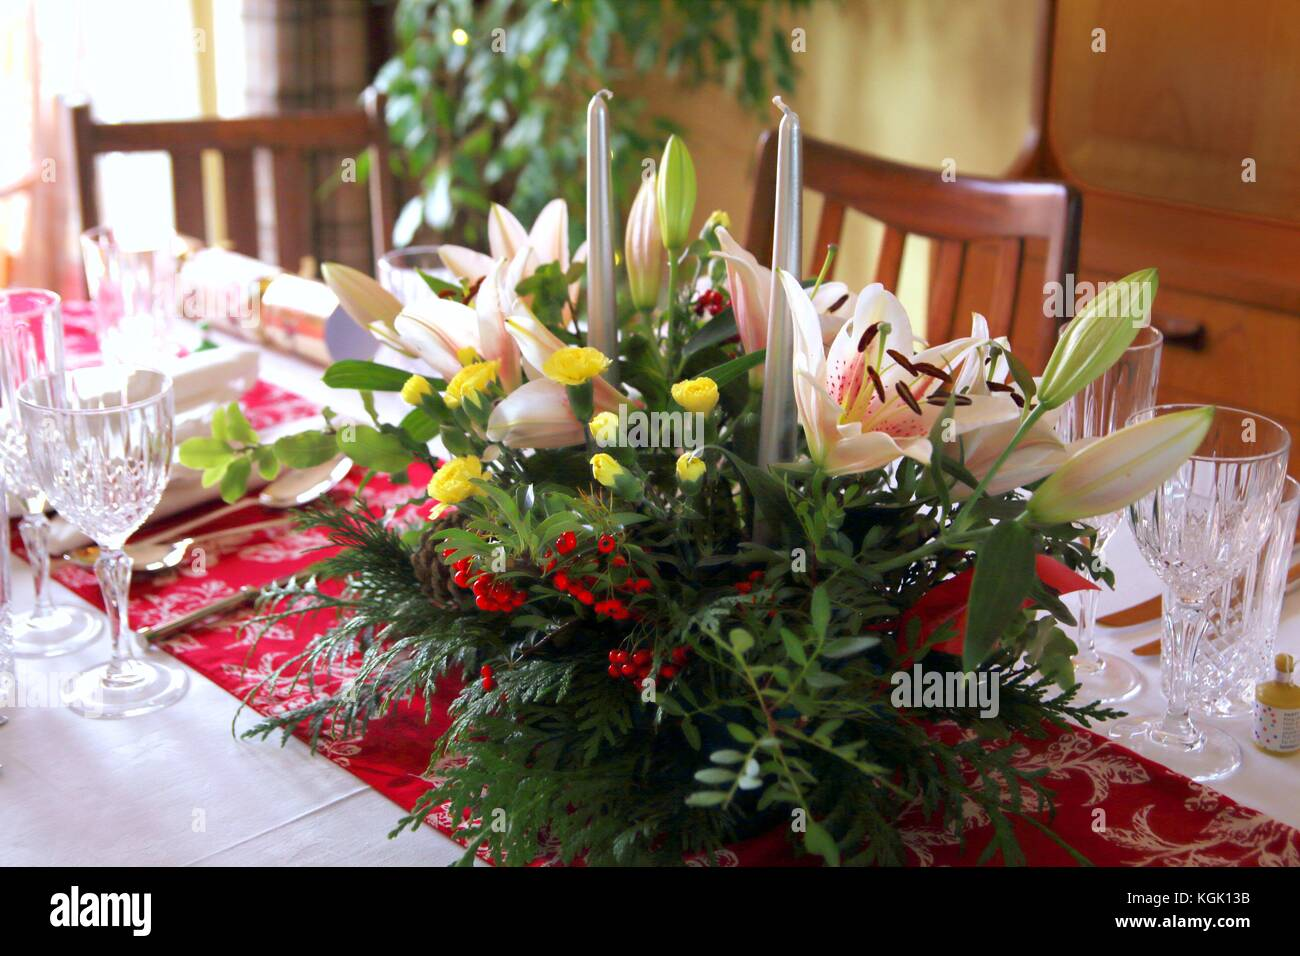 Image of: Beautiful Floral Centerpiece With Candles On A Festive Dining Table Stock Photo Alamy